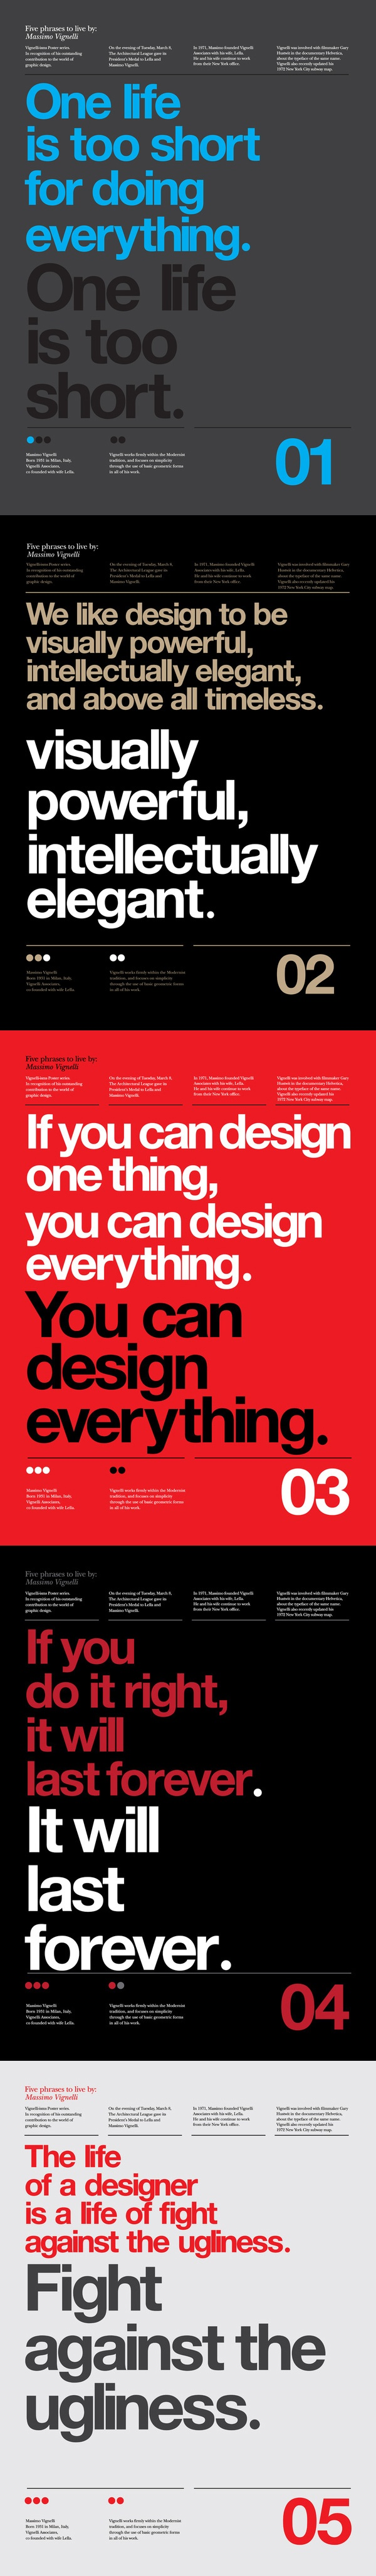 150 best graphic design images on pinterest posters graph design